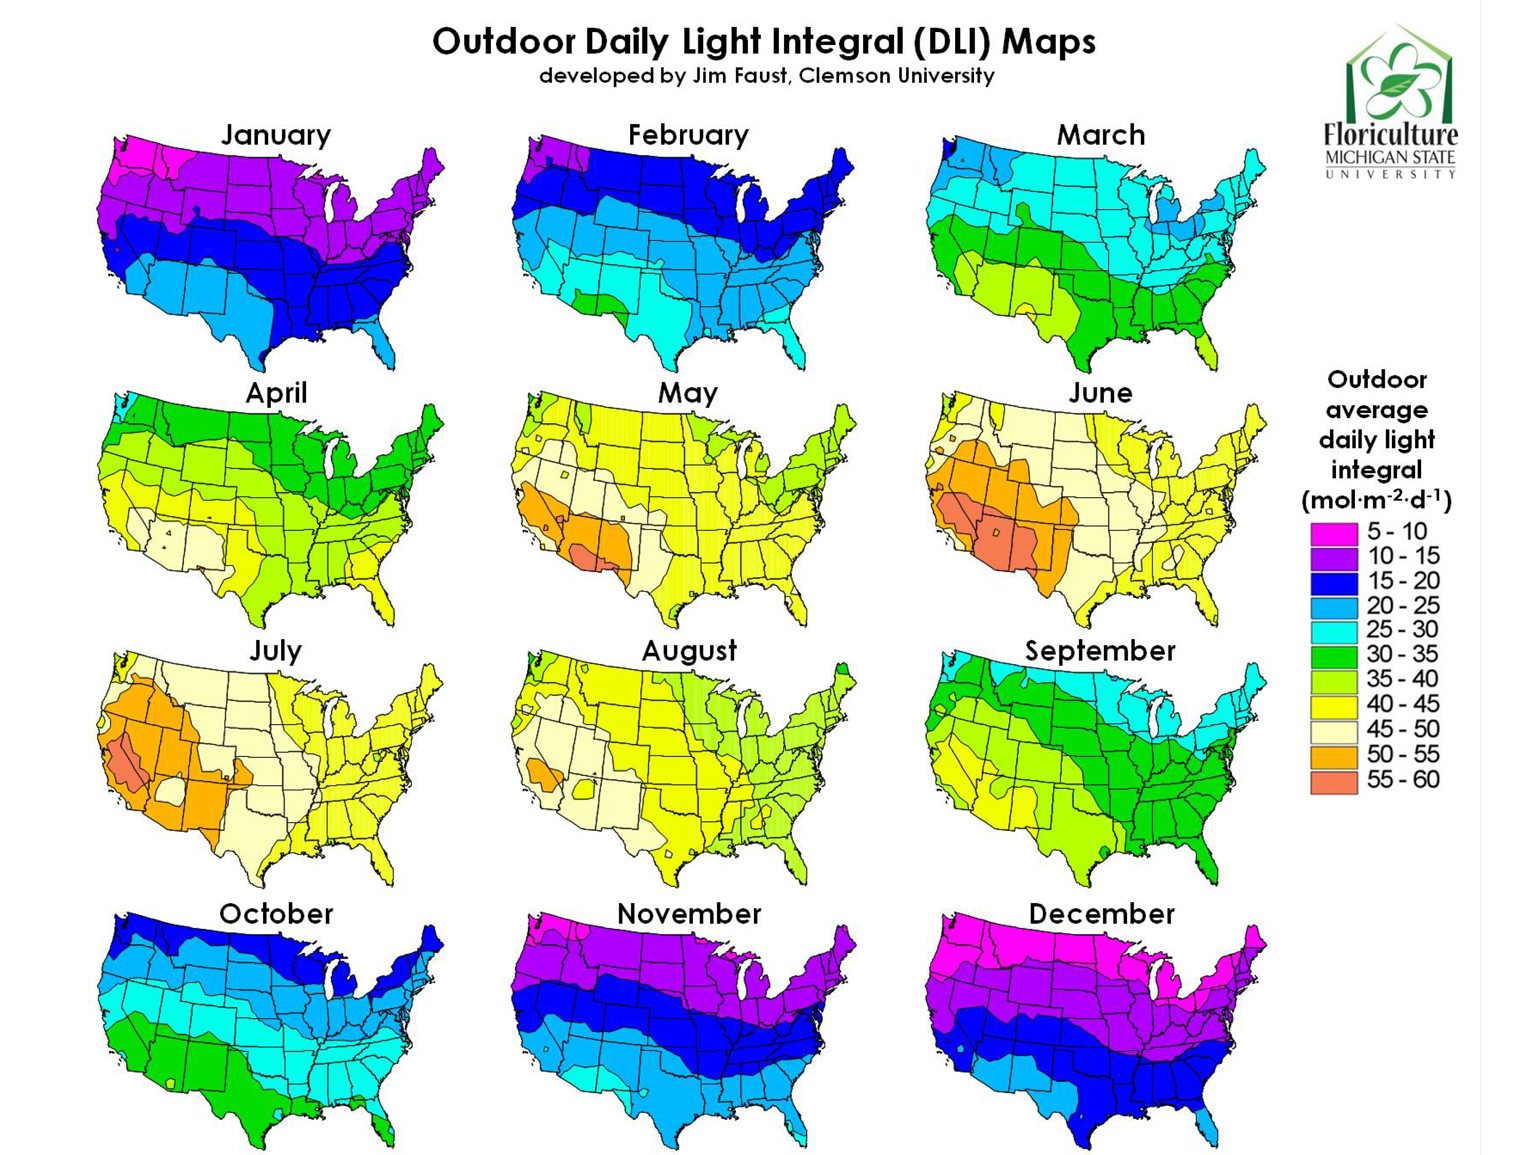 Outdoor daily light integral map for continental United States January through December